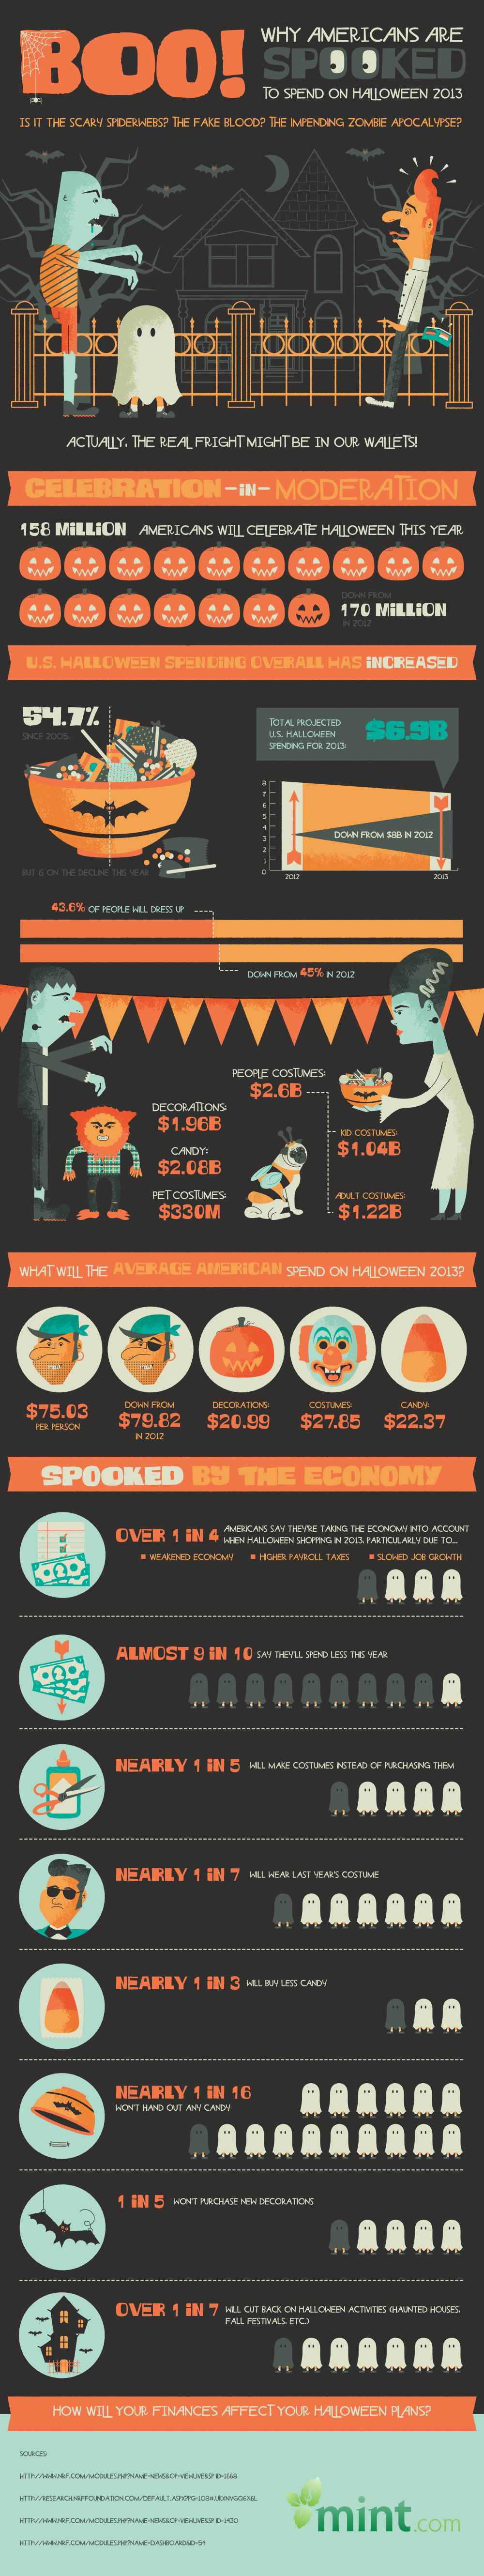 Boo Why Are Consumers Scared of Halloween 2013